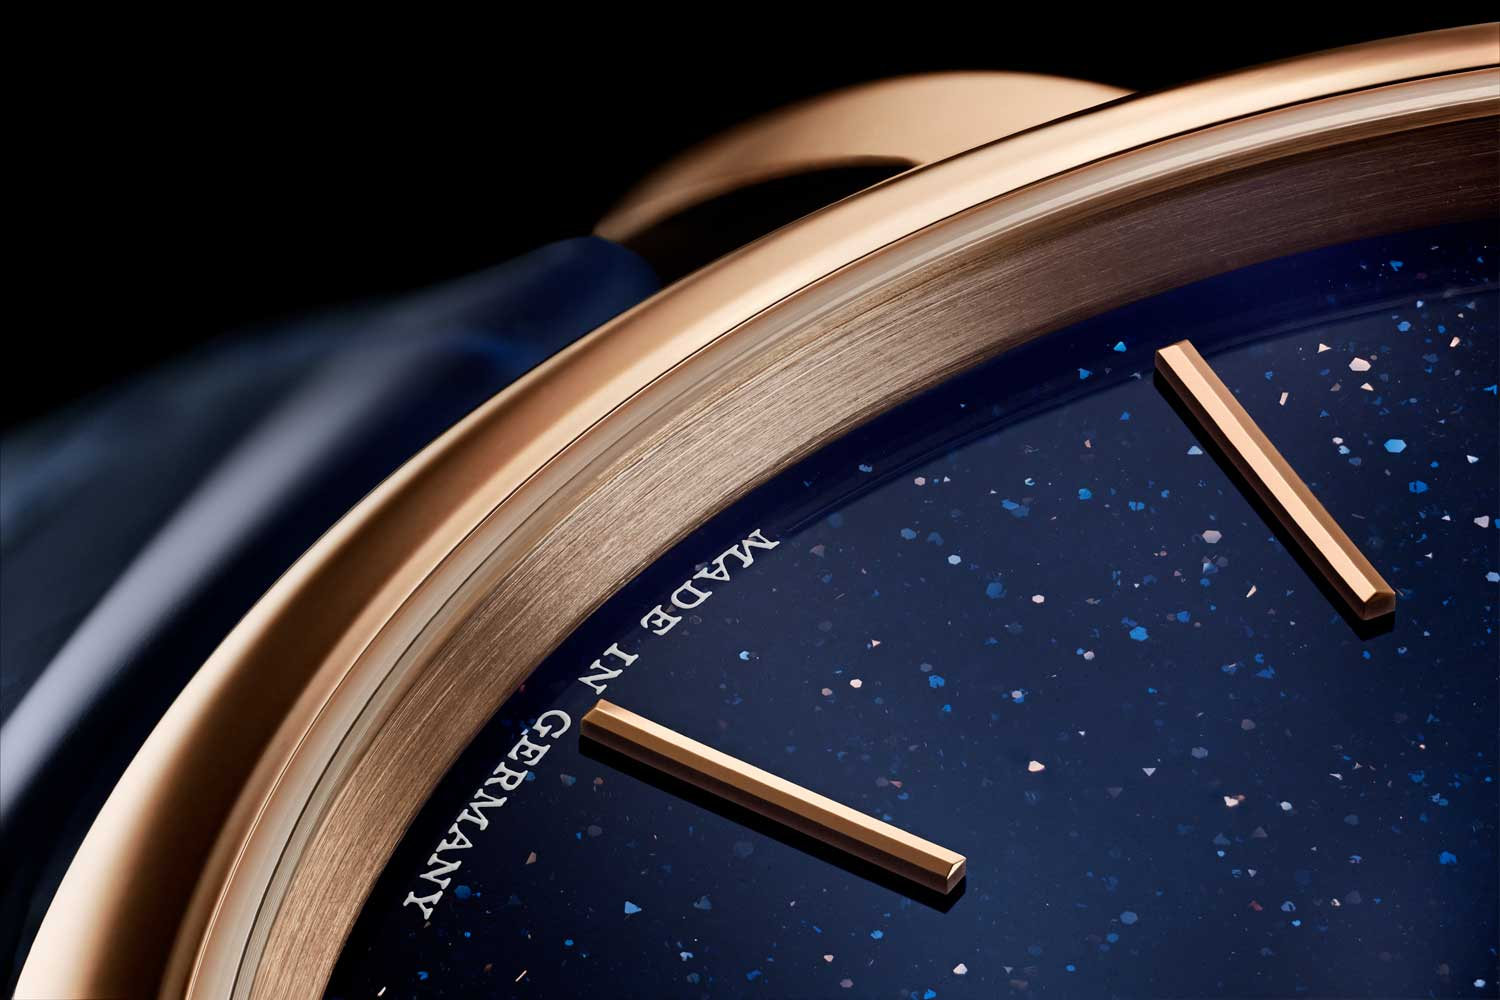 The dial of the 2021 A. Lange & Söhne Saxonia Thin, ref. 211.088 is achieved by infusing molten glass with minuscule copper particles over a flame, where its intensity is gradually decreased so what you end up with is a clear substance bespeckled with the flakes of copper that play in the light to give this starry night impression